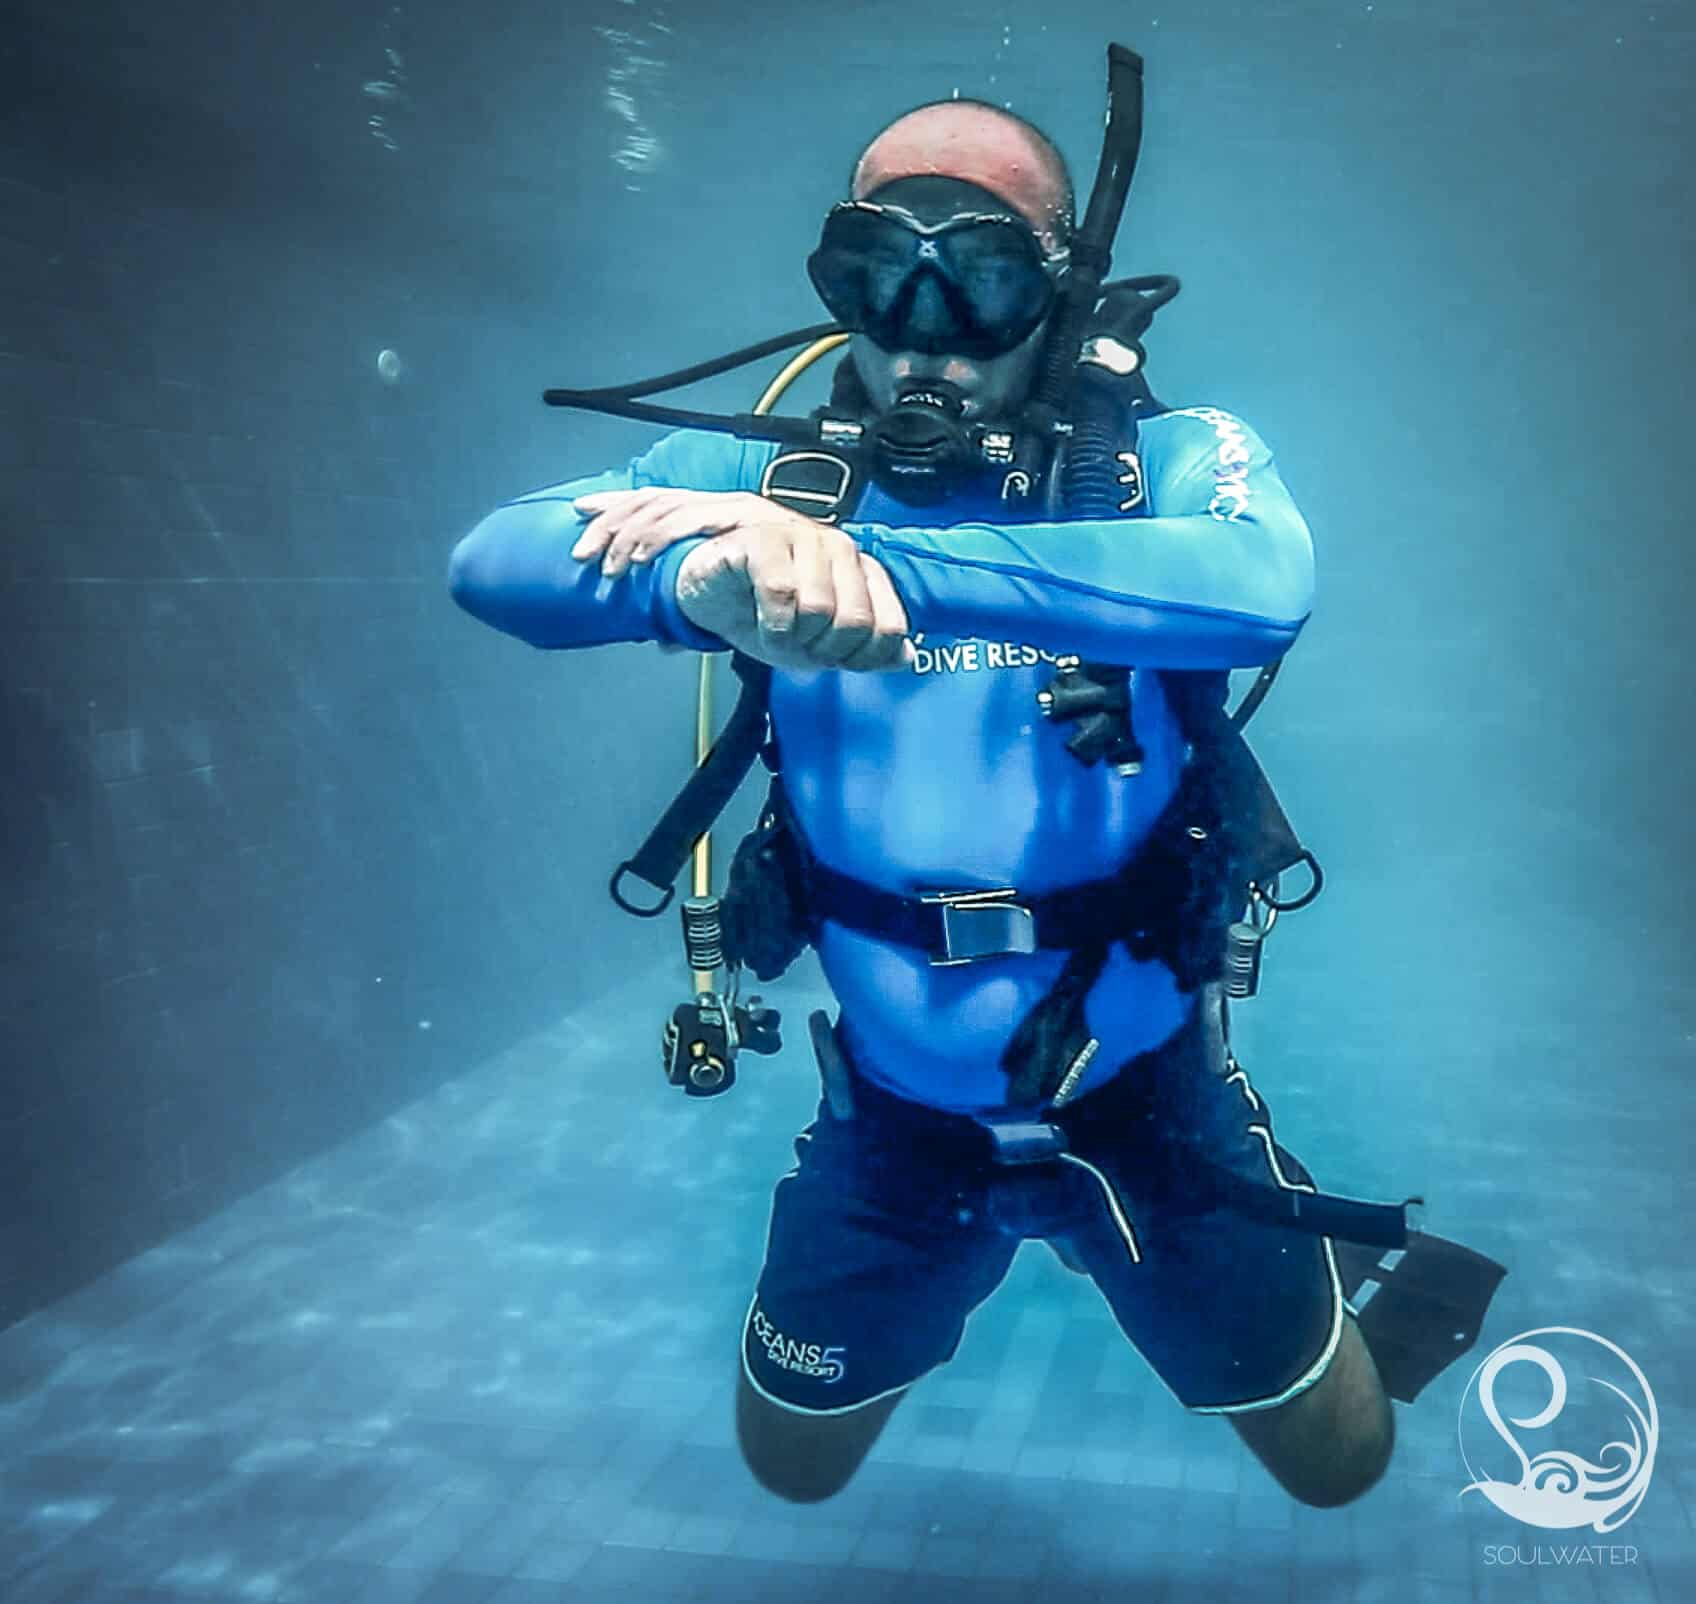 A diver practicing buoyancy skills in the pool, hovering